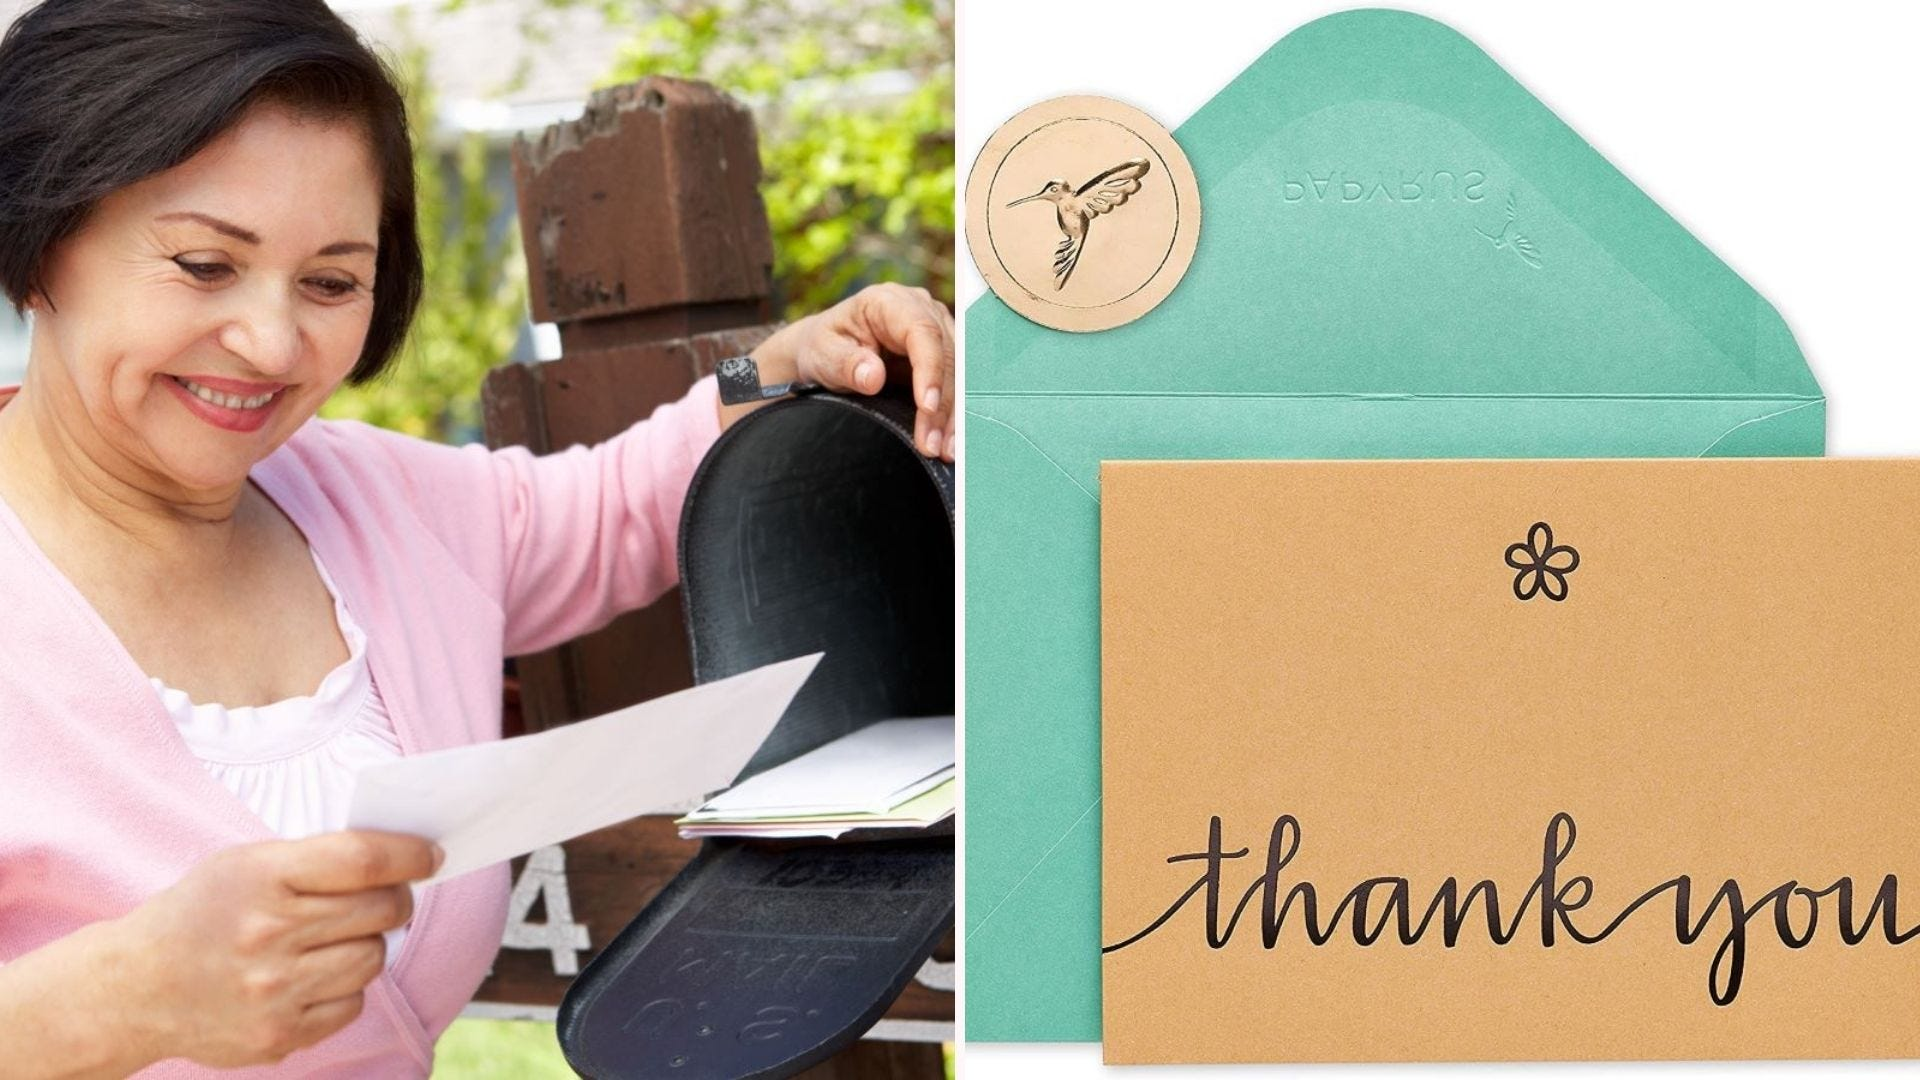 A smiling woman reading a Thank You card at a mailbox.